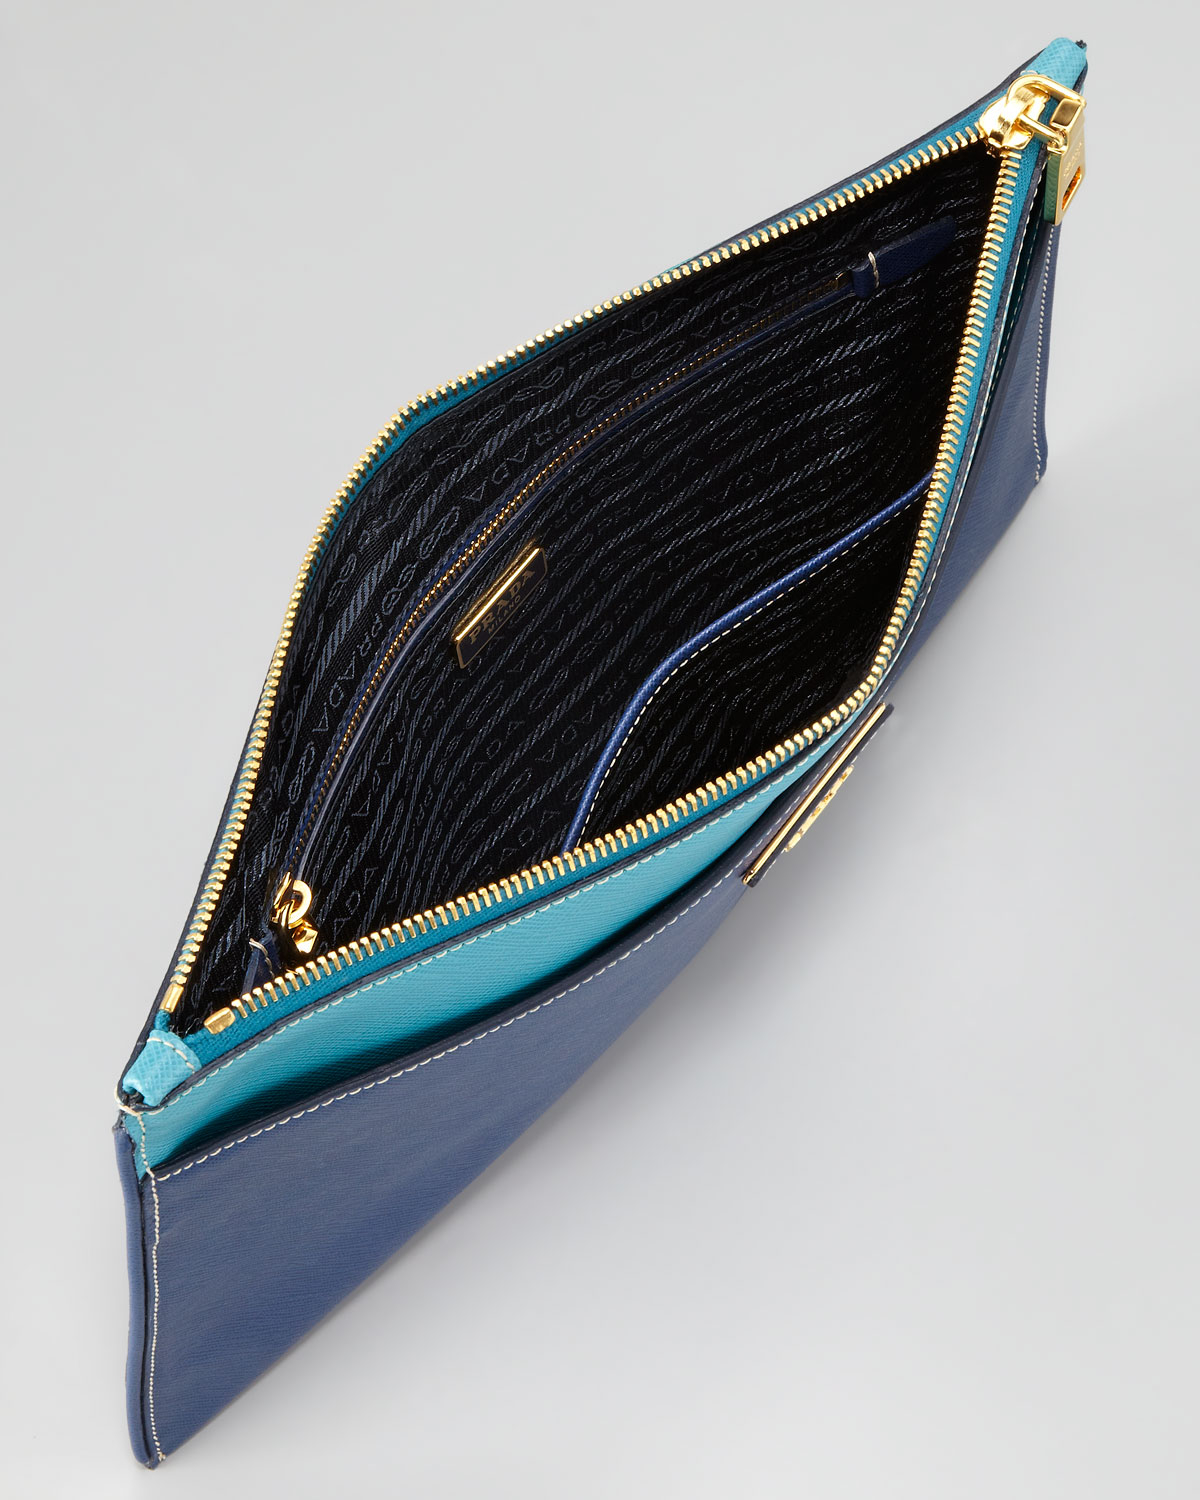 Prada Saffiano Bicolor Pouch in Blue (bluette turchese) | Lyst